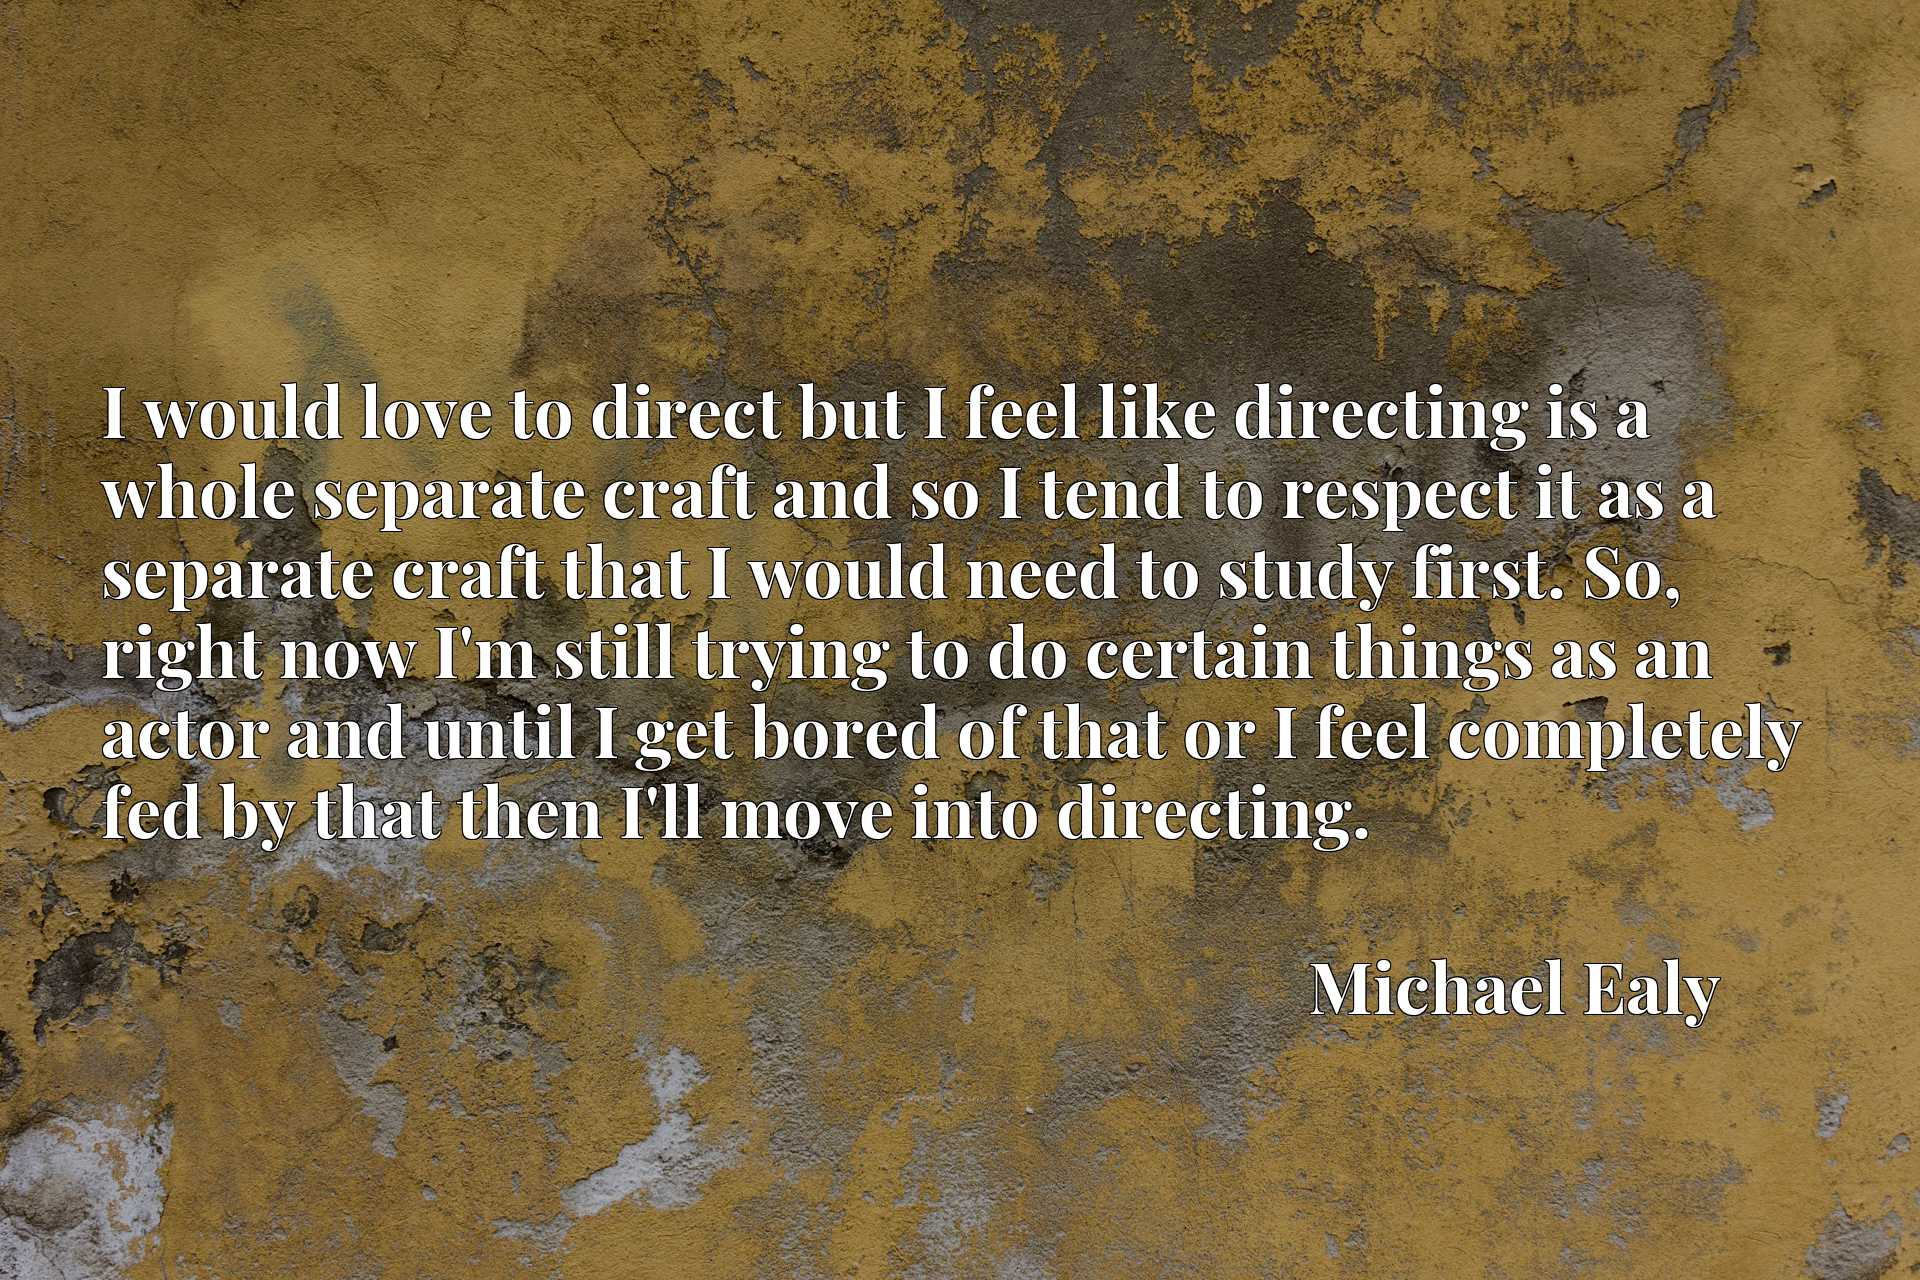 I would love to direct but I feel like directing is a whole separate craft and so I tend to respect it as a separate craft that I would need to study first. So, right now I'm still trying to do certain things as an actor and until I get bored of that or I feel completely fed by that then I'll move into directing.